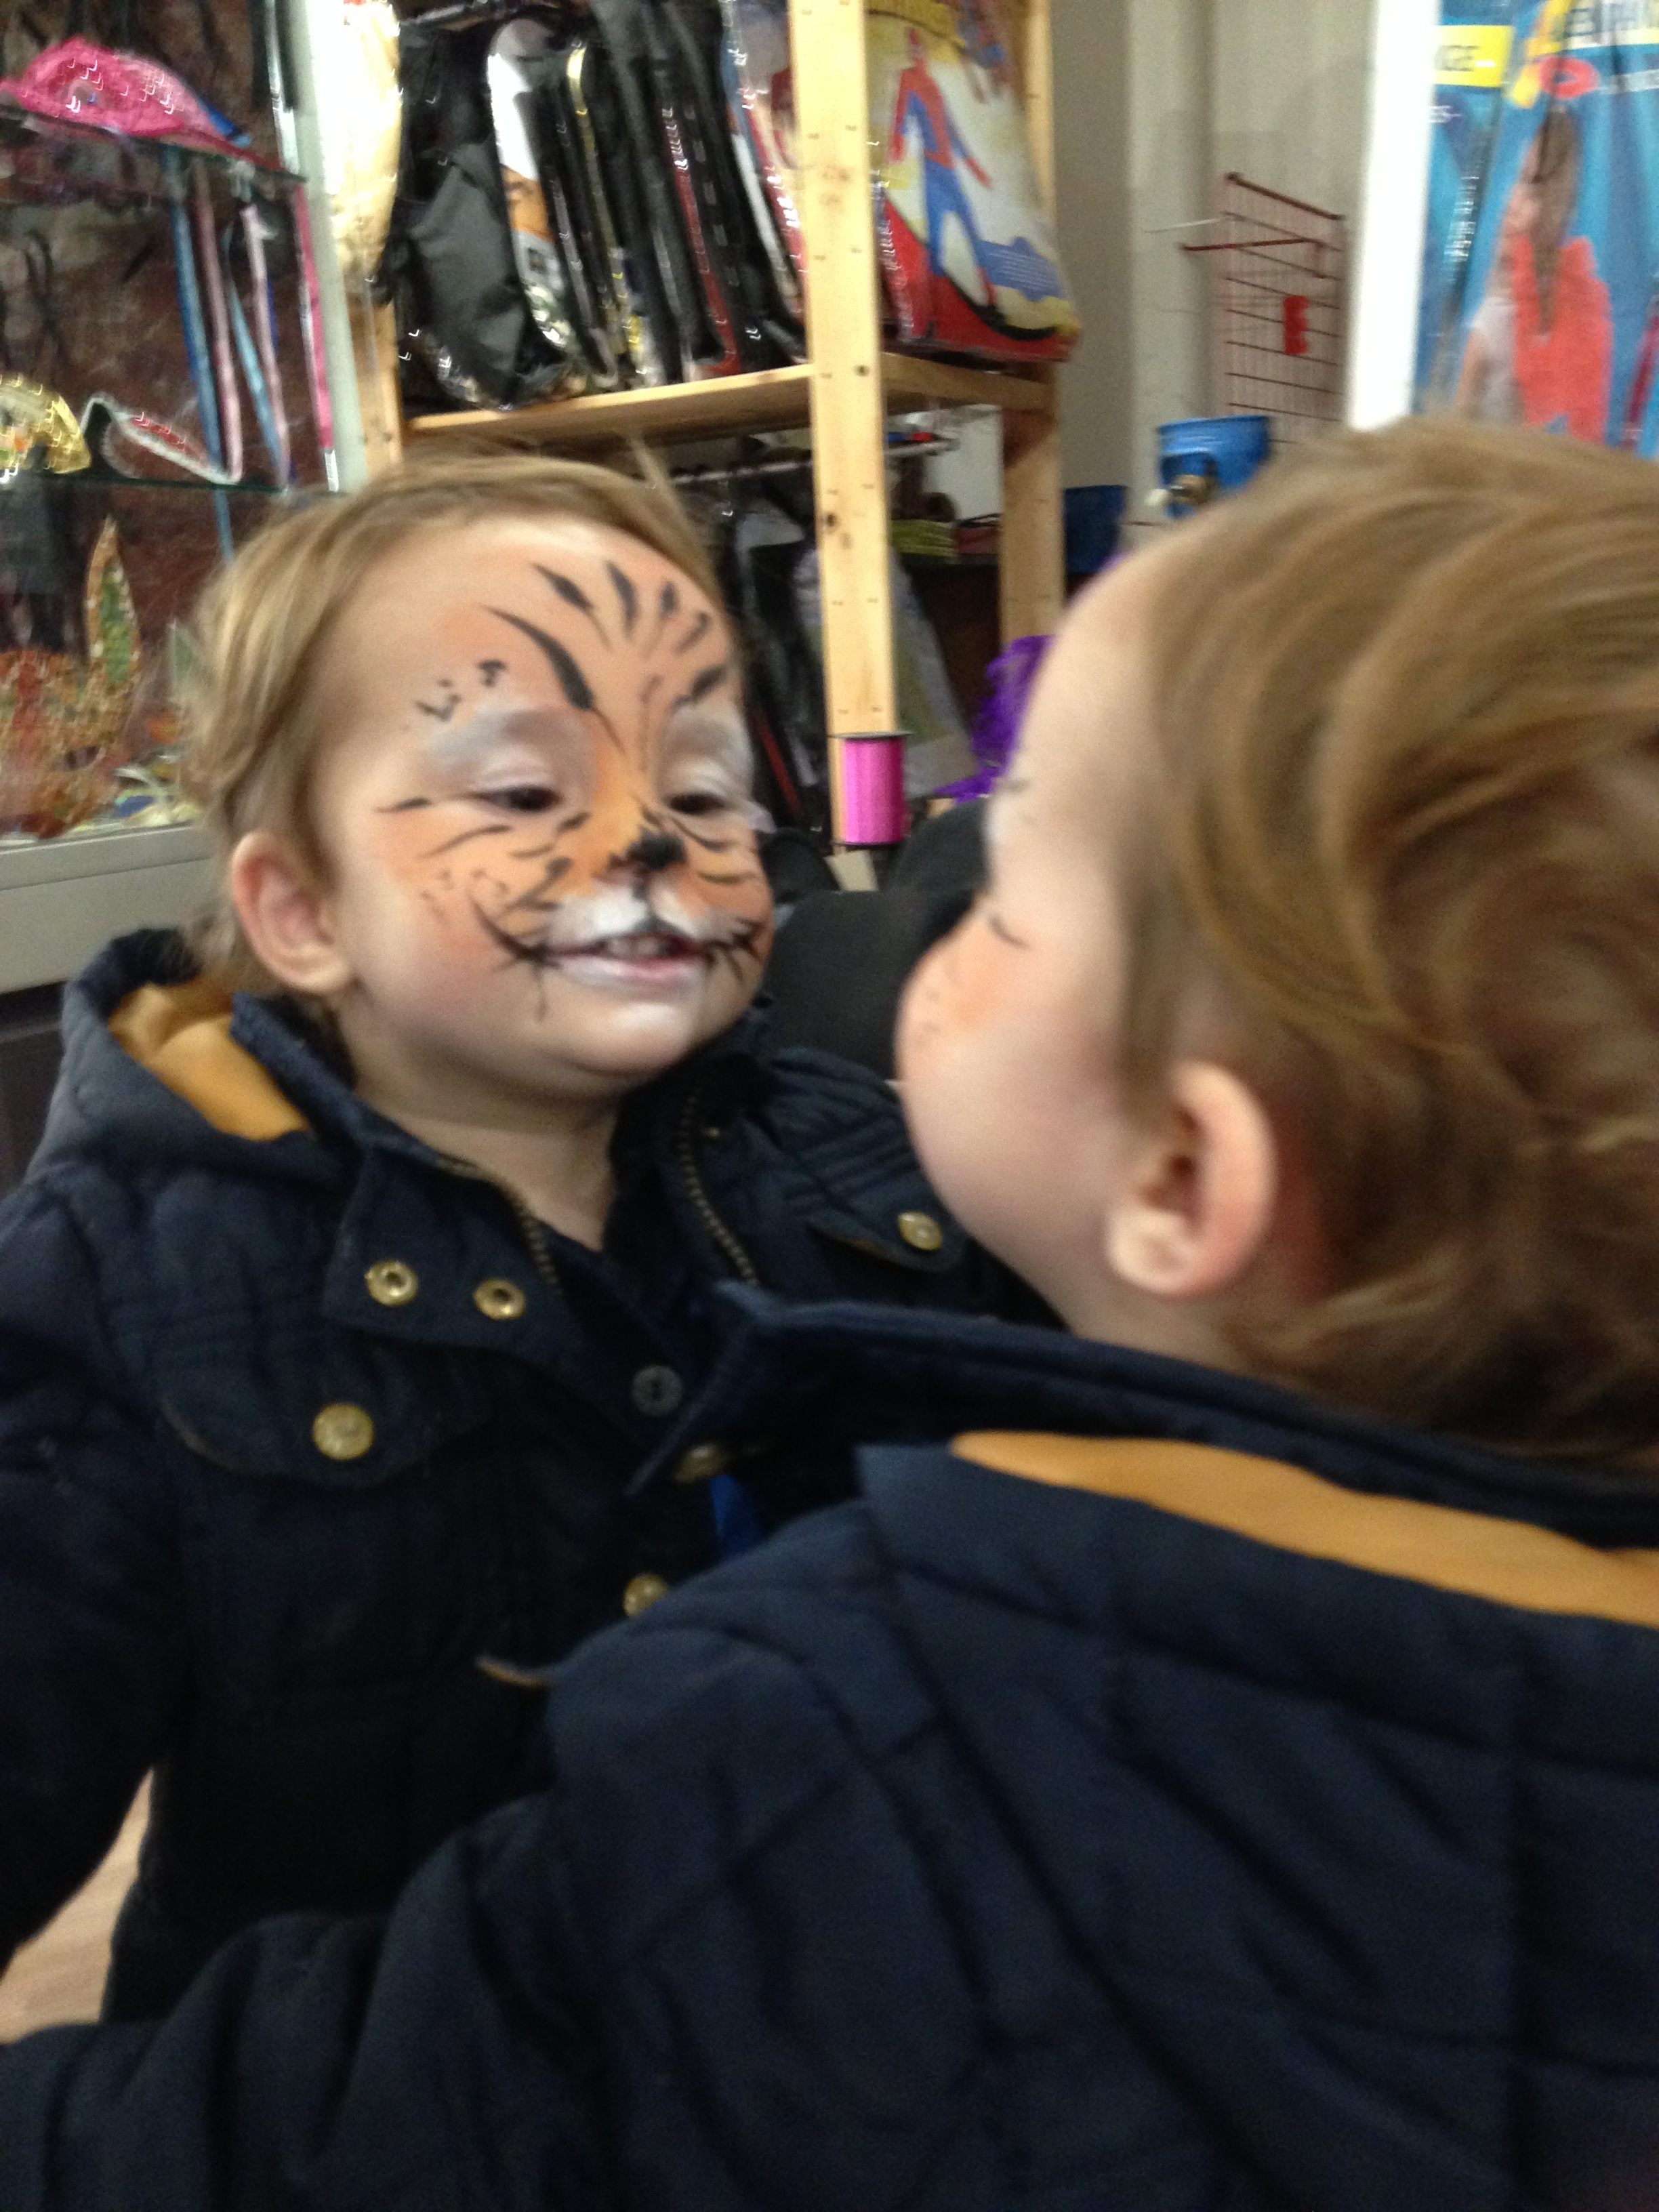 Our son, Antoine, embracing his inner tiger! :)